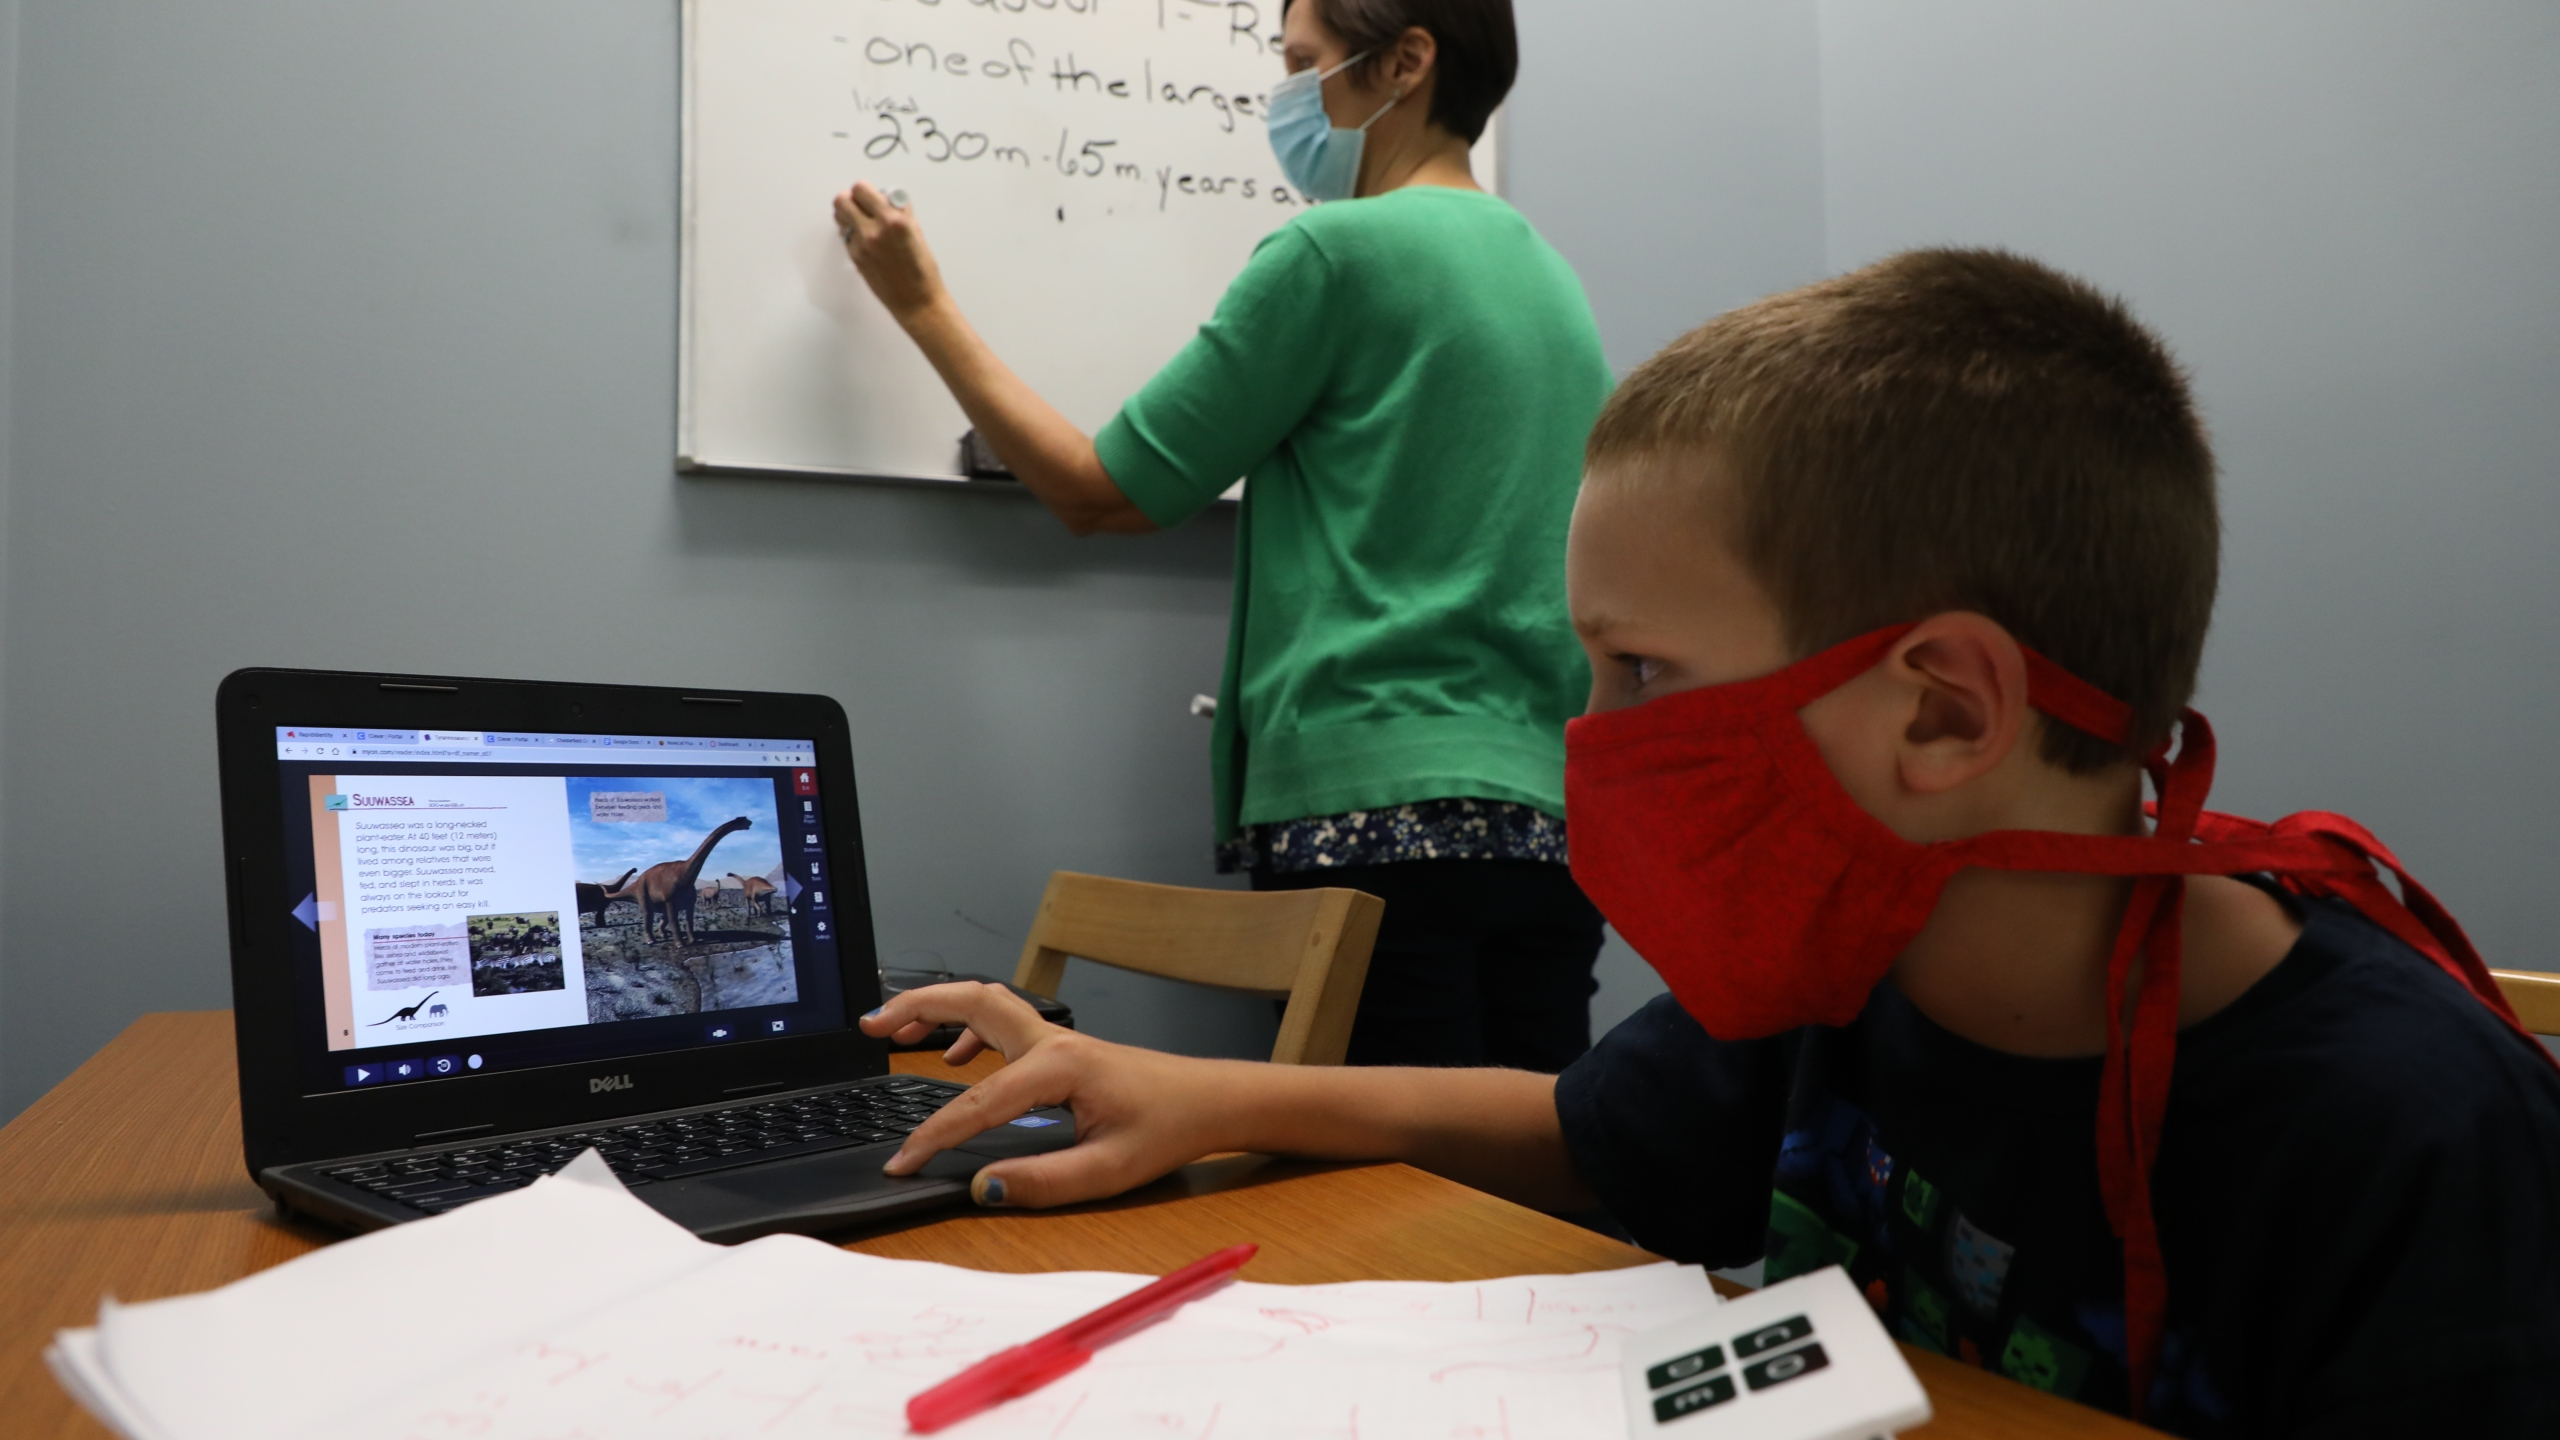 Chesterfield County Public Library's virtual learning and telework space